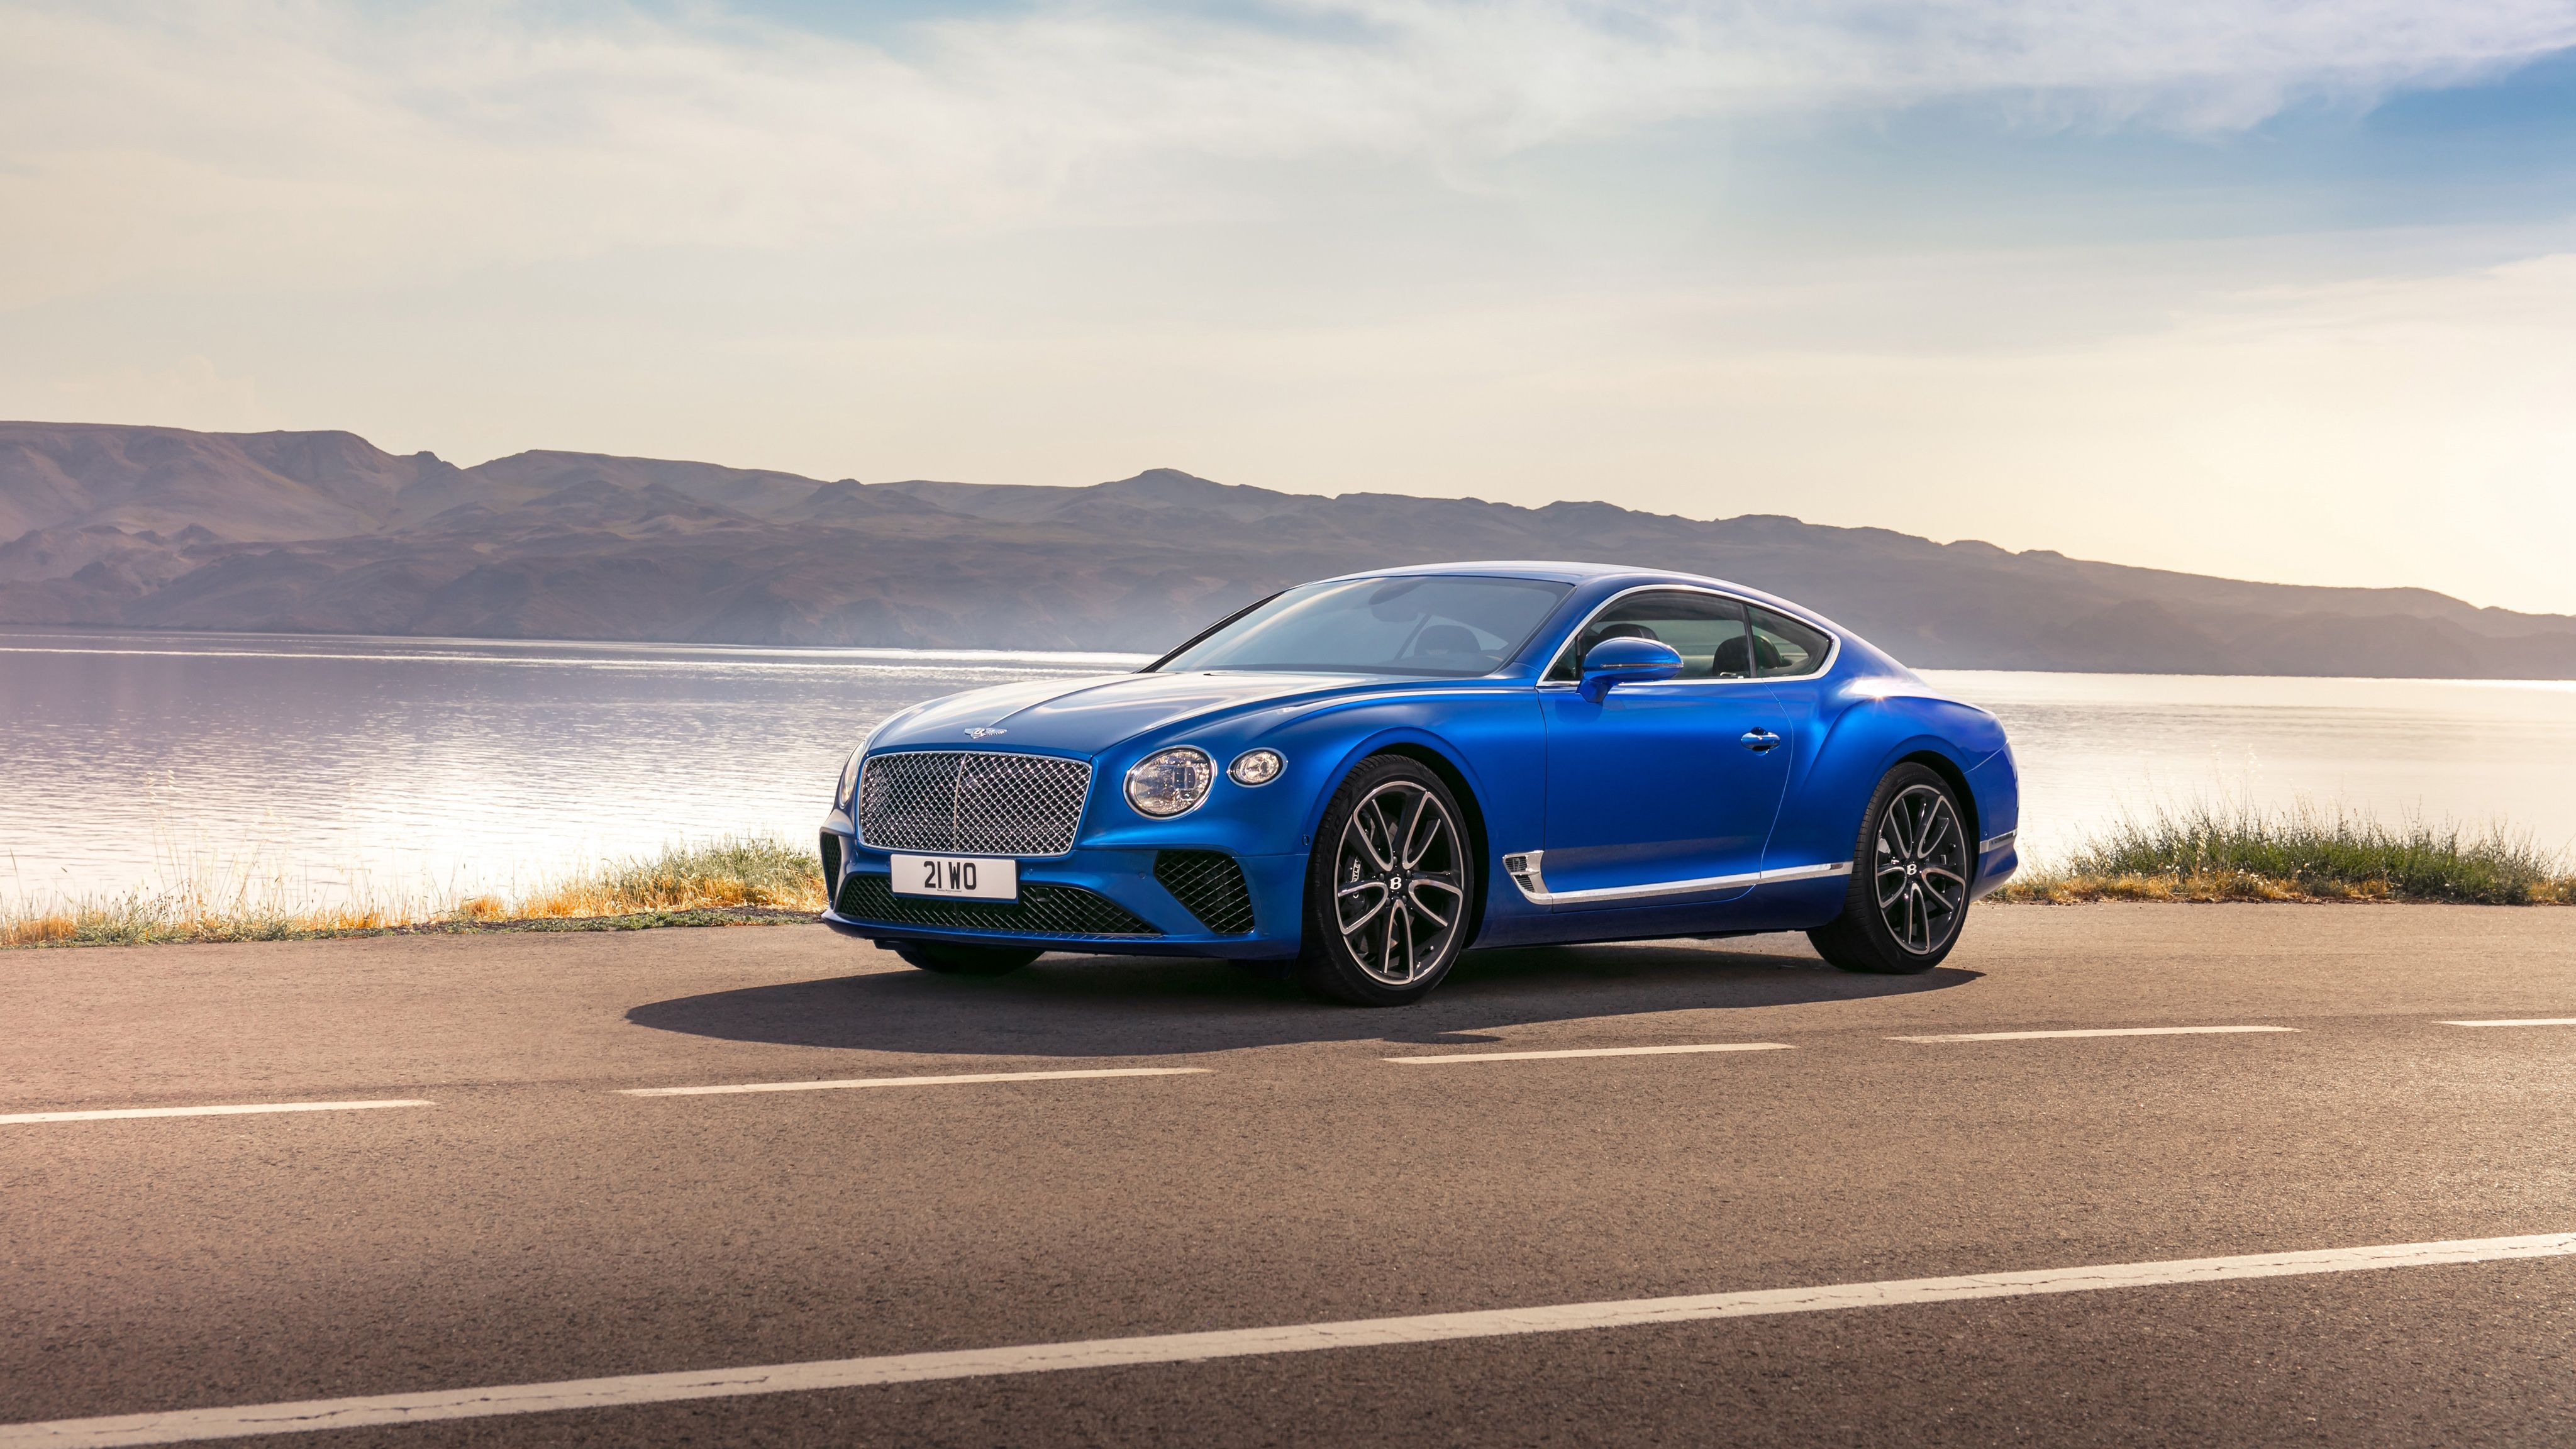 2017 Bentley Continental GT 3 Wallpaper | HD Car Wallpapers